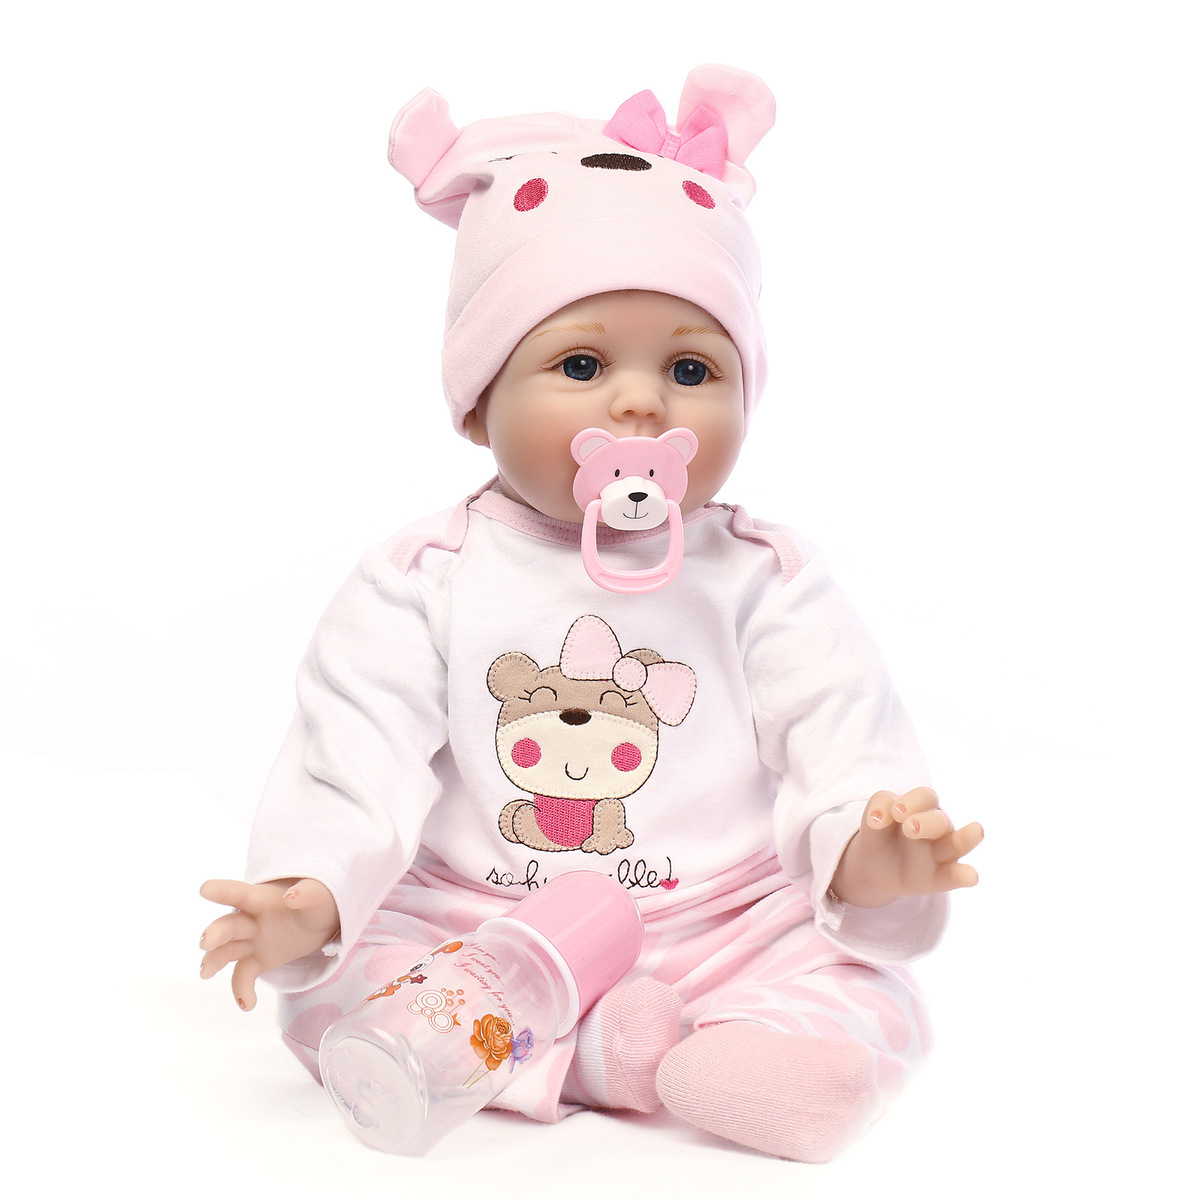 22 Inch 55cm Simulation Soft Silicone Reborn Dolls Cute Fashion Pink Skin Model Doll Toys Gifts For Kids Children #TC